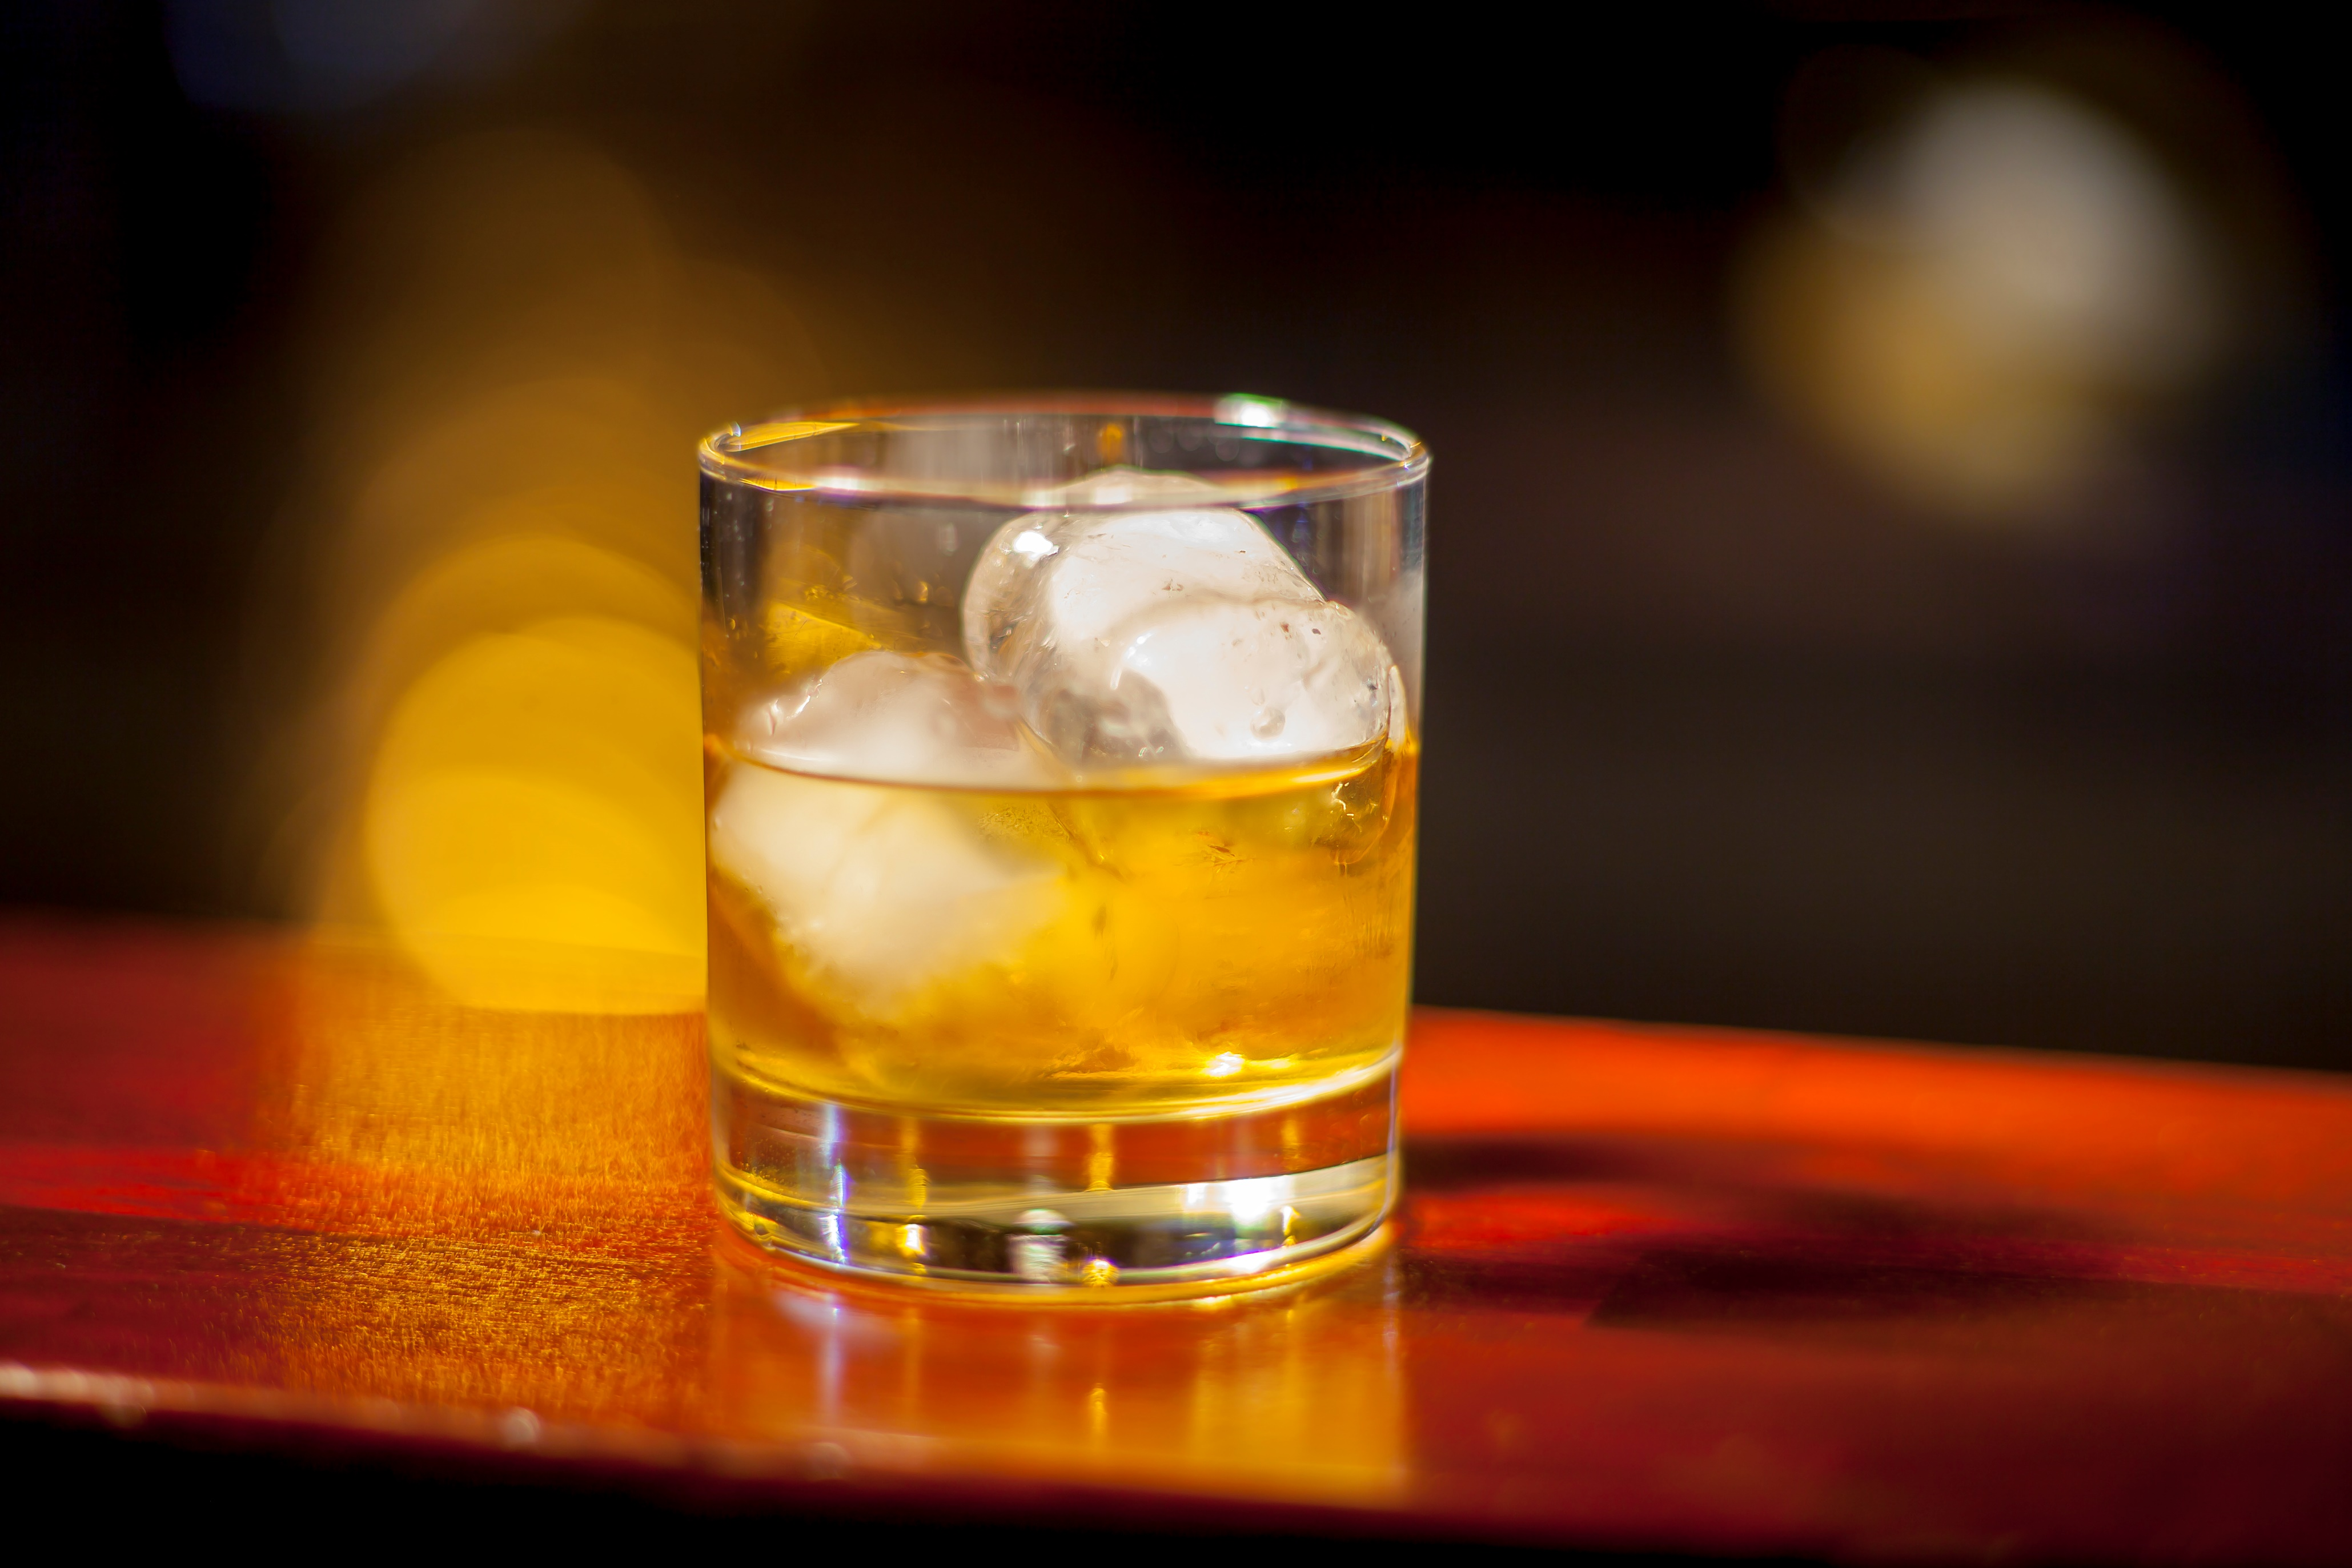 Did you know good quality ice prevents hangover?